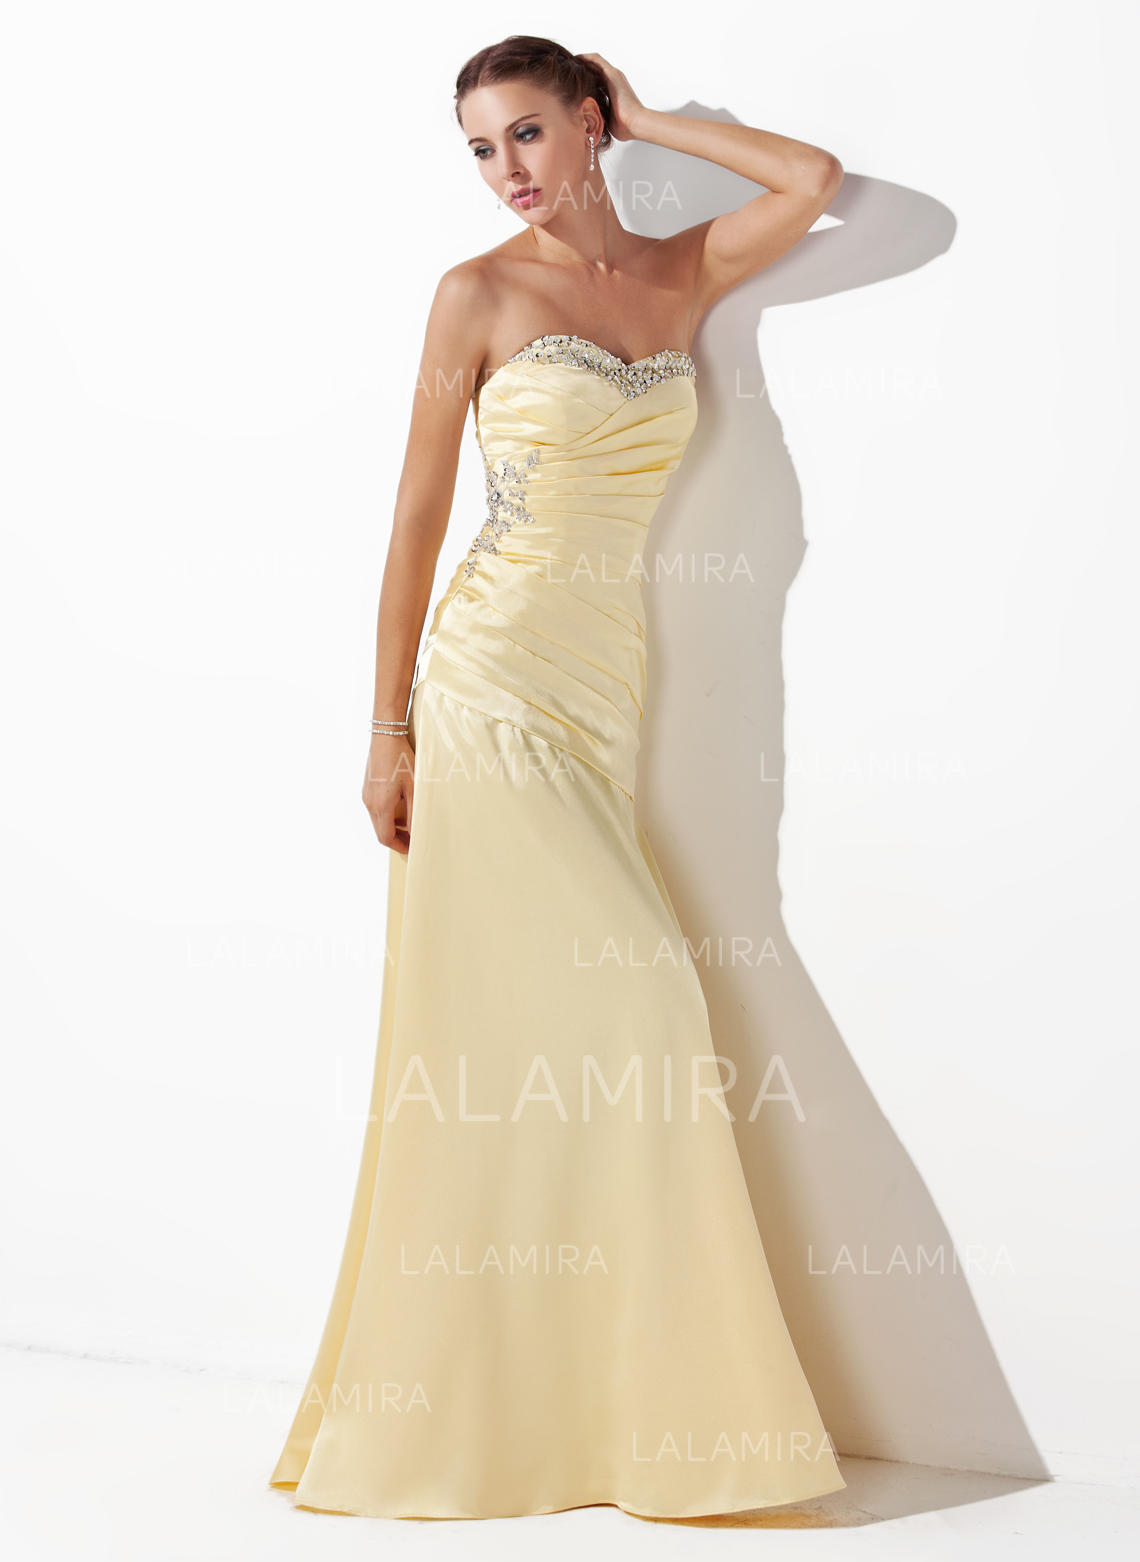 ca4a41c806b9b A-Line/Princess Charmeuse Prom Dresses Chic Floor-Length Sweetheart  Sleeveless (018004827. Loading zoom